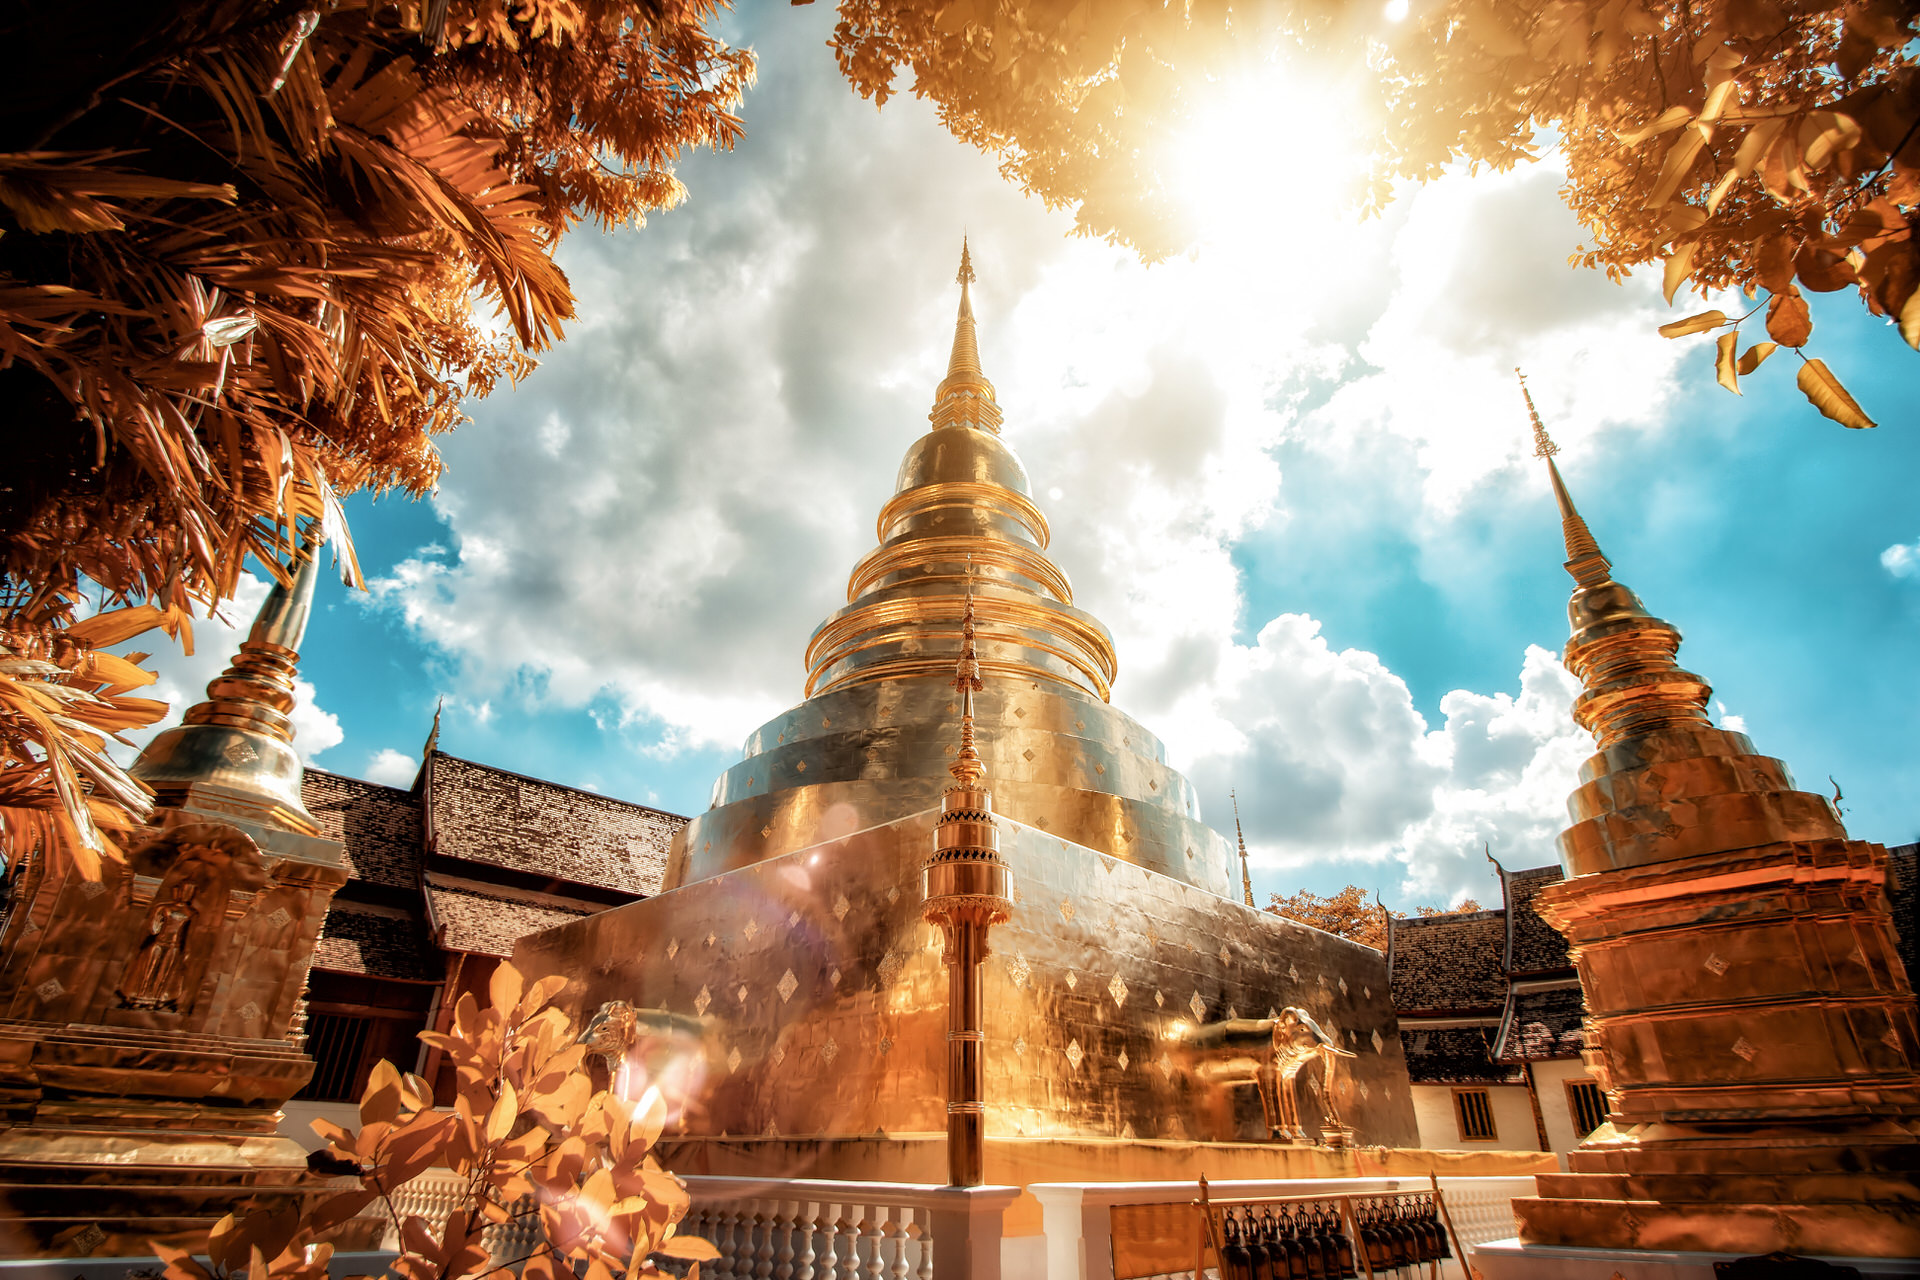 + About Chiang Mai & North Thailand